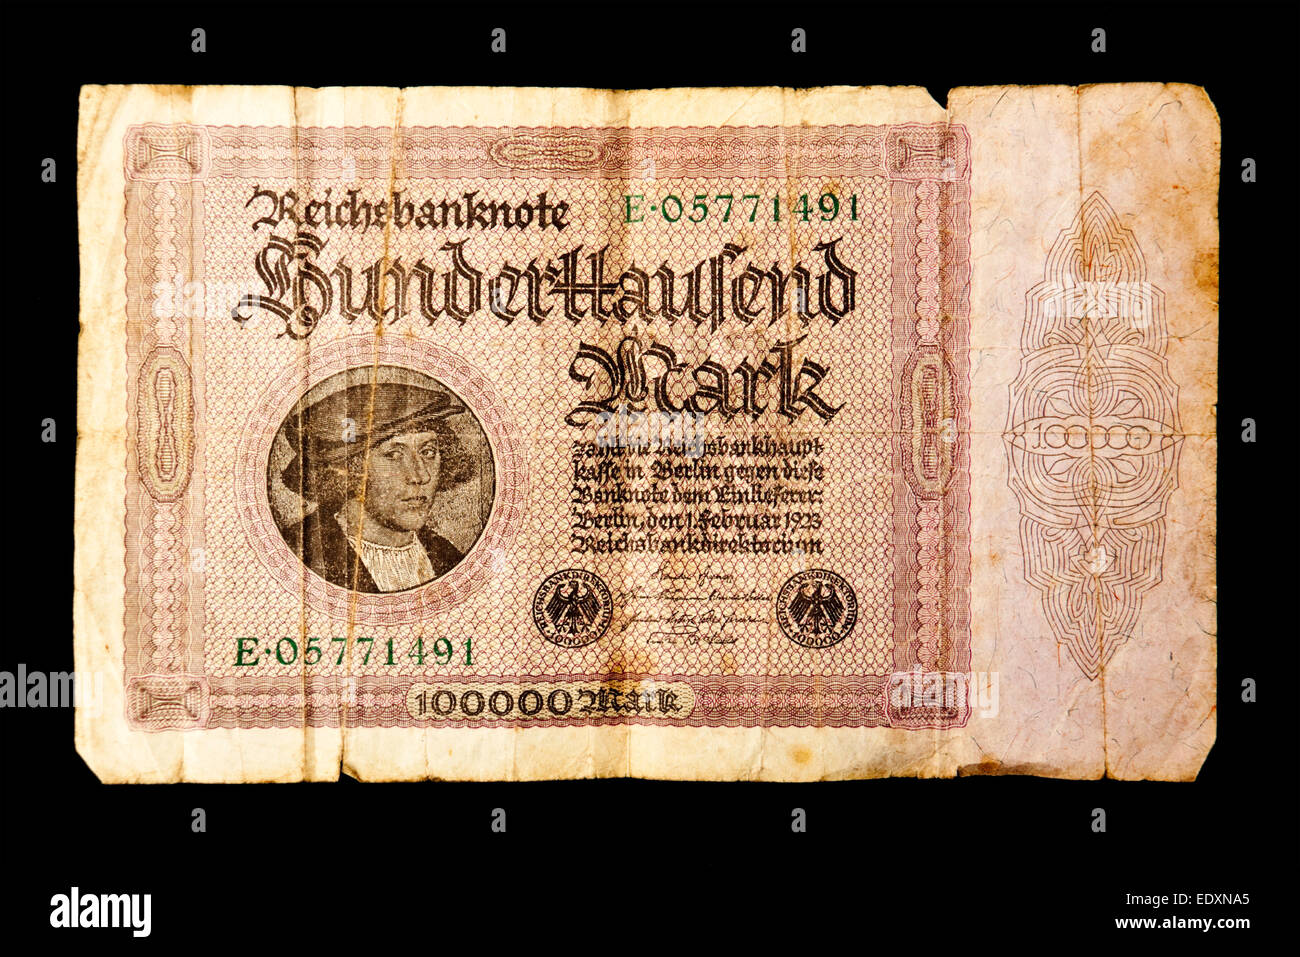 essay on hyperinflation in germany Papers: low graphics  hyperinflation in germany during the early 1920's by erin hubbard  imagine that after a lifelong of hard work and saving, you find that your.